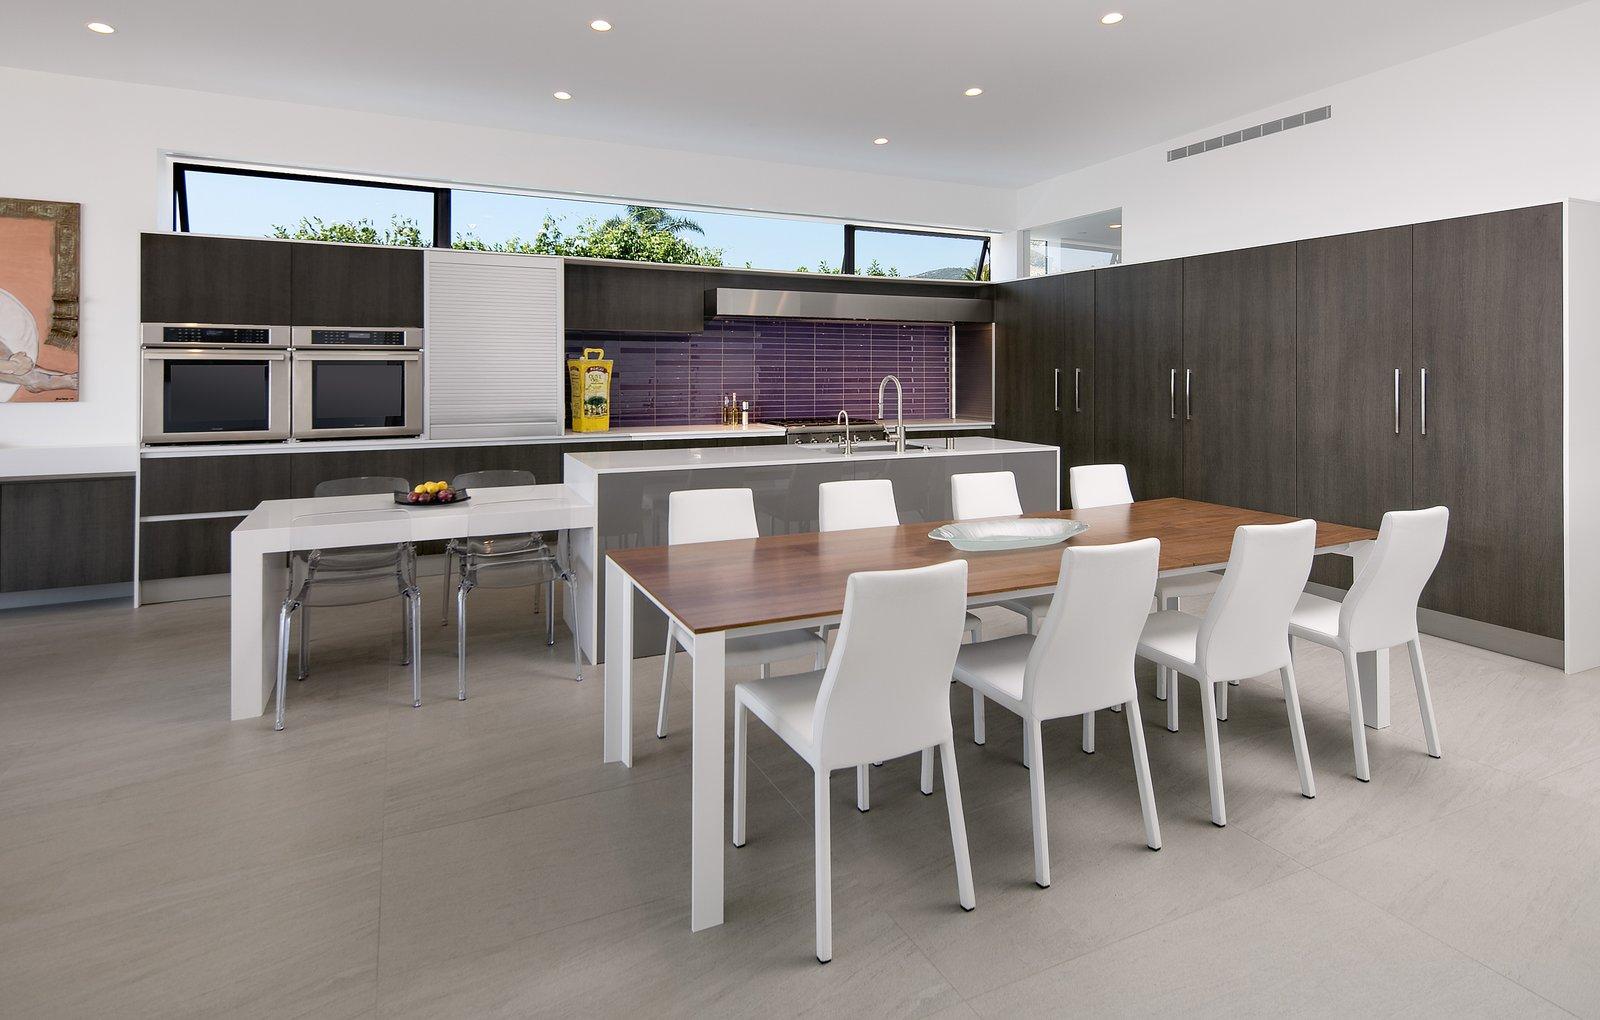 Purple mosaic tile adds a pop of color the the minimal kitchen.   Glenhaven Residence by Abramson Teiger Architects